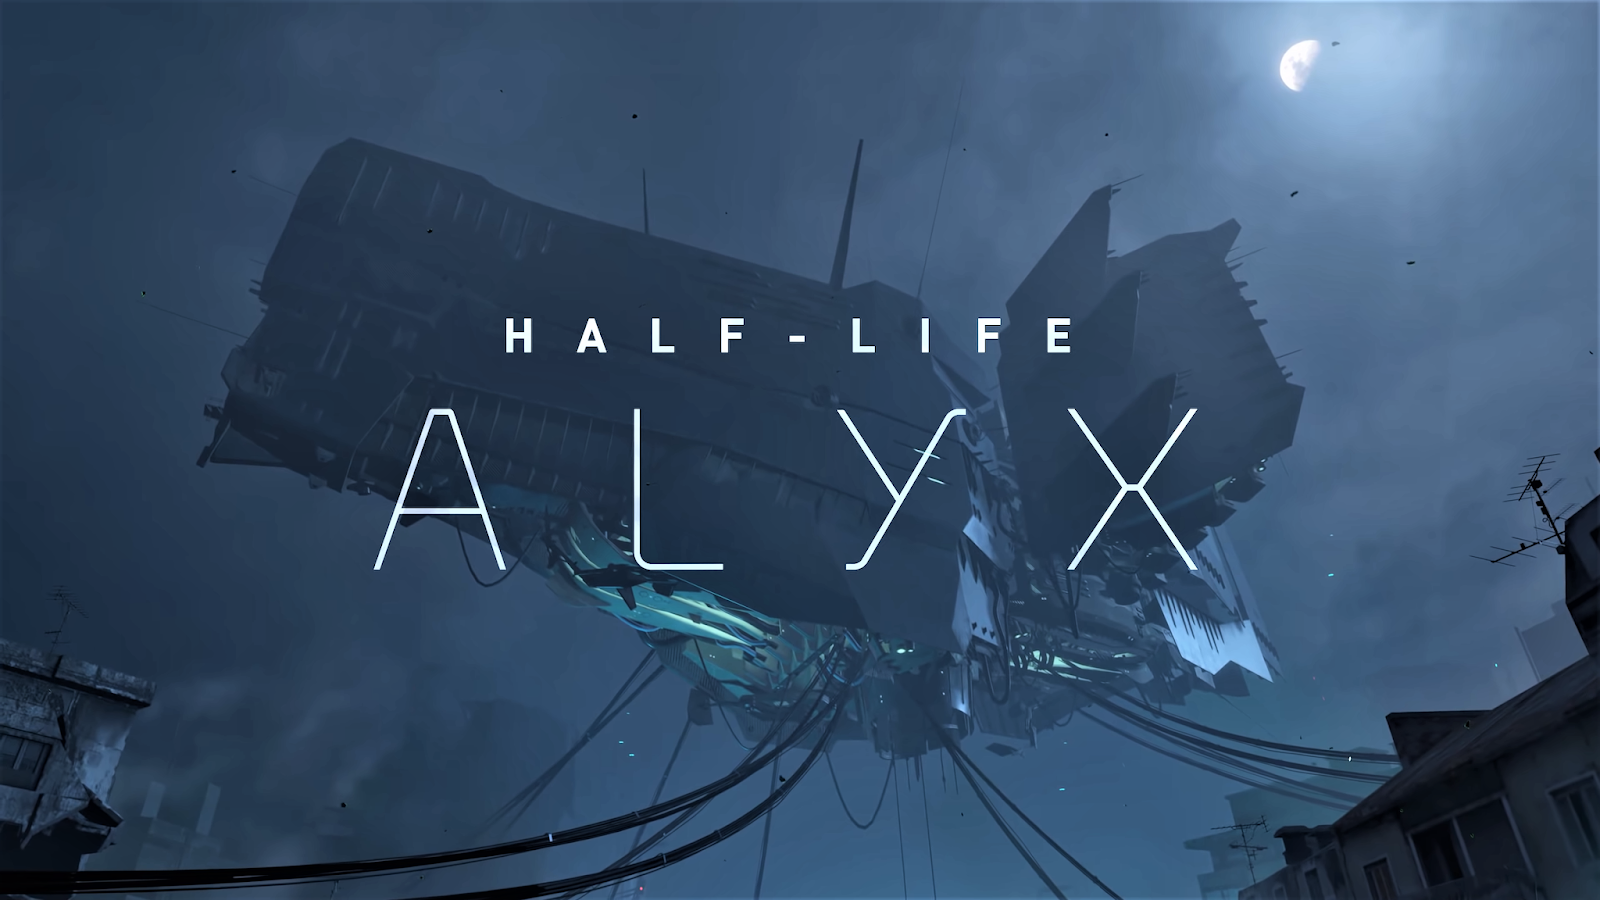 New Half-Life (Alyx) game to be released 2.